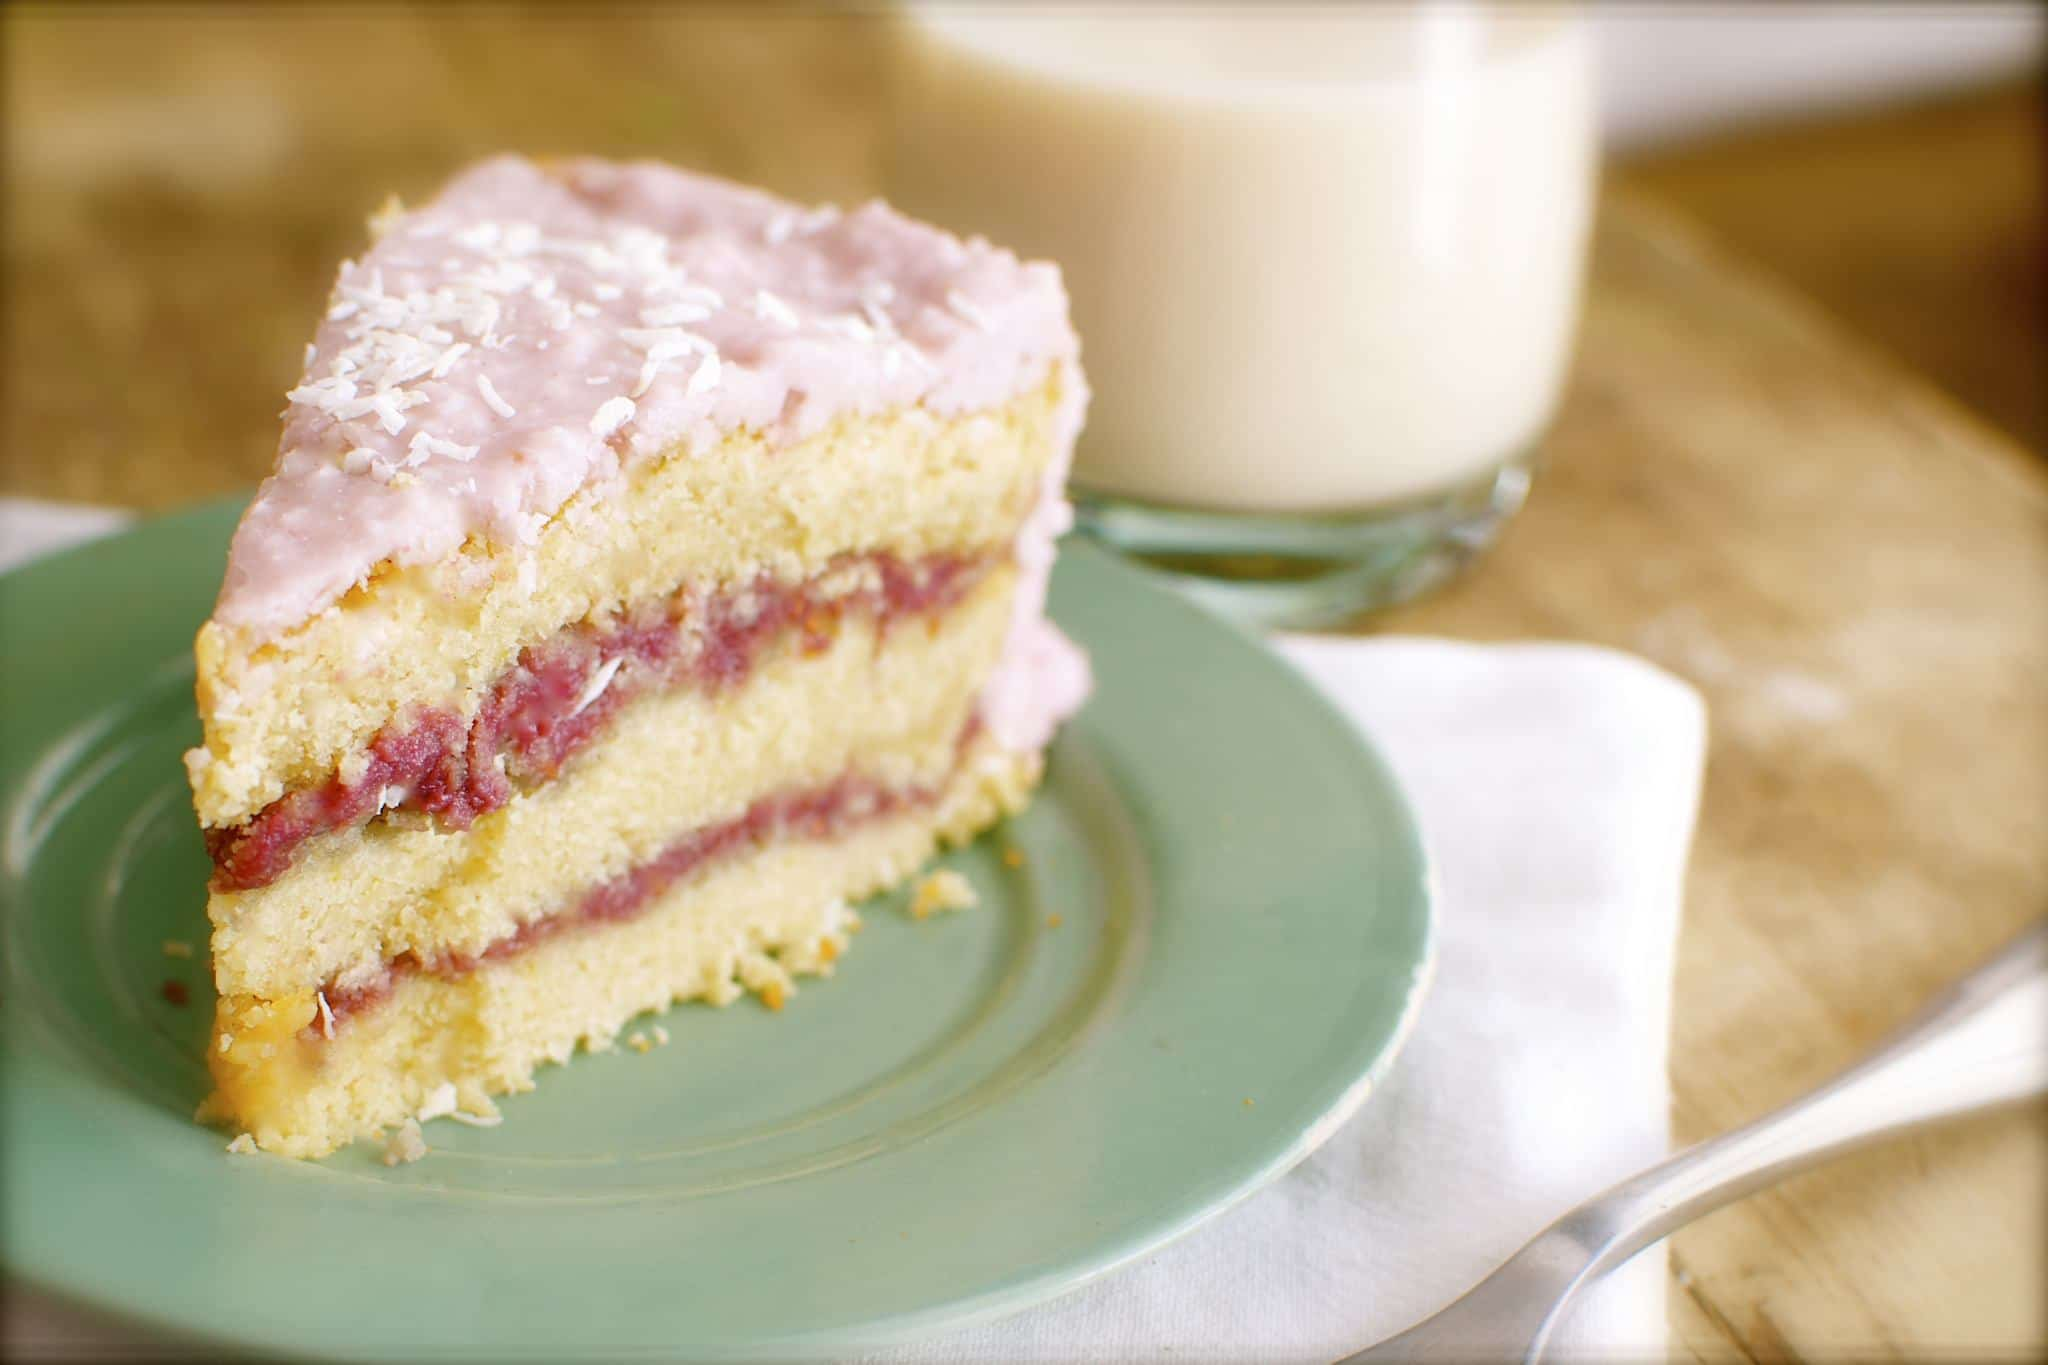 Pink coconut cream icing is lightly dusted with a layer of shredded coconut for this coconut cake.